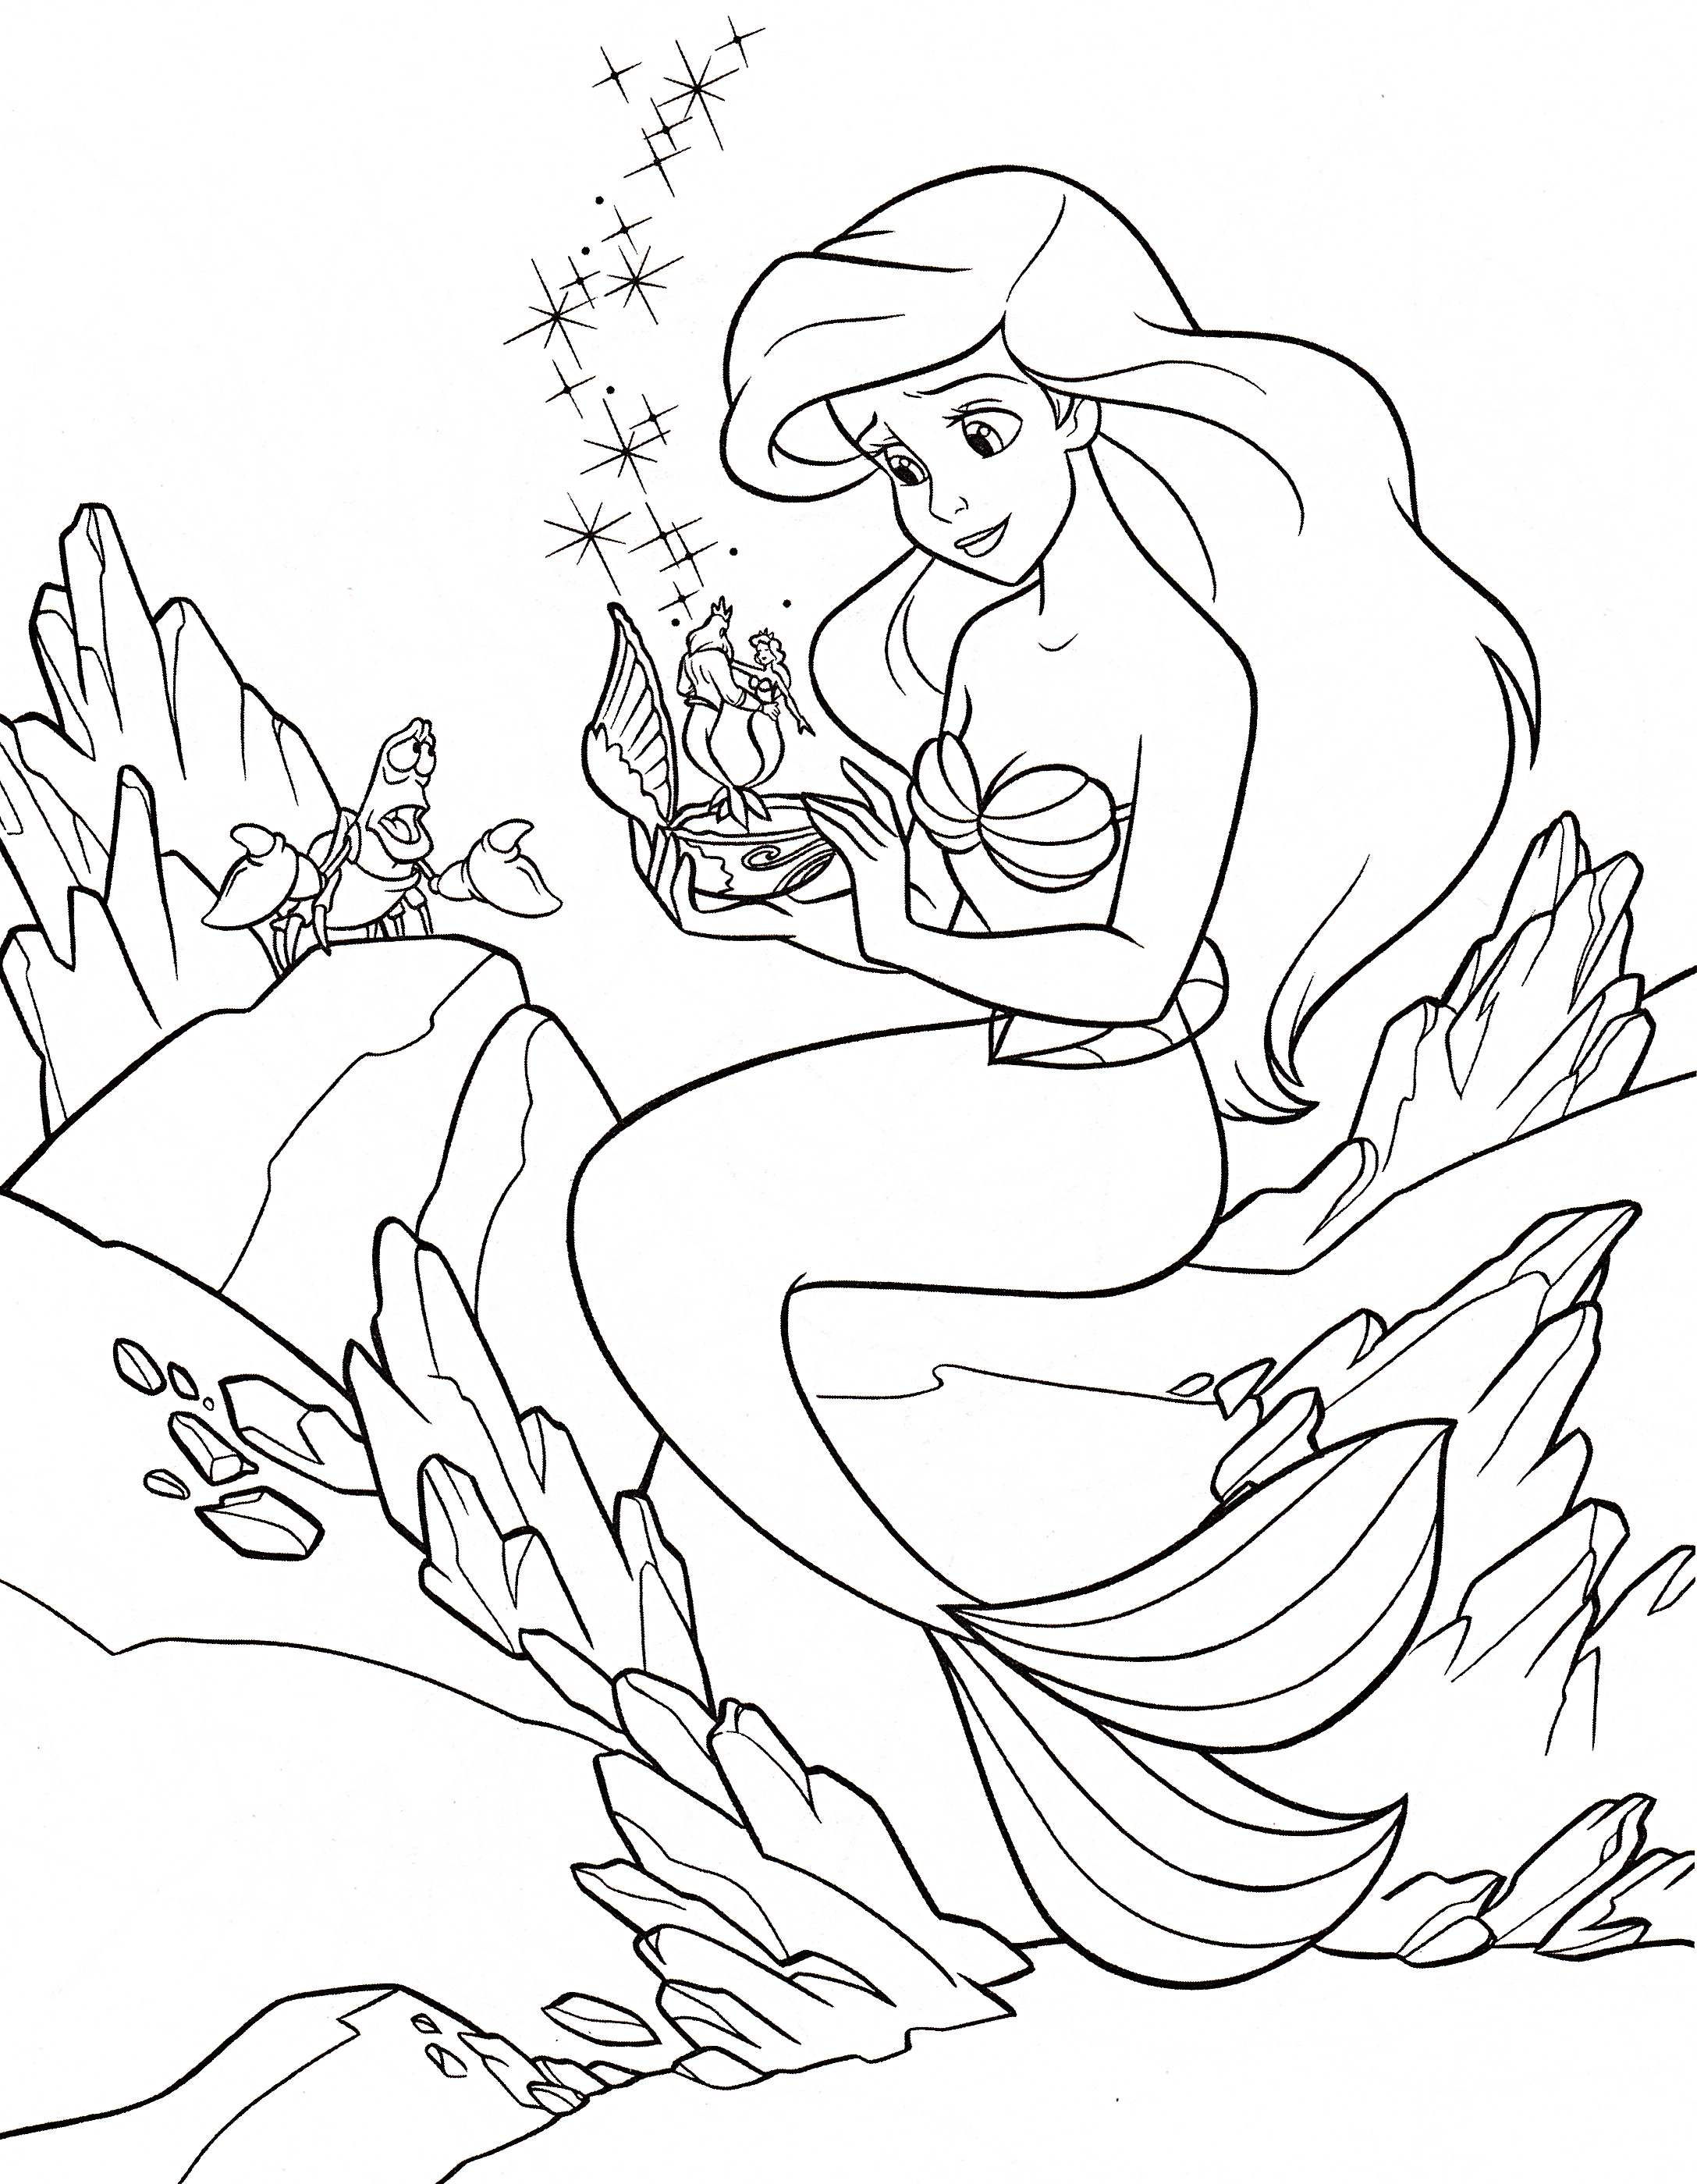 disney ariel coloring pages - photo#32